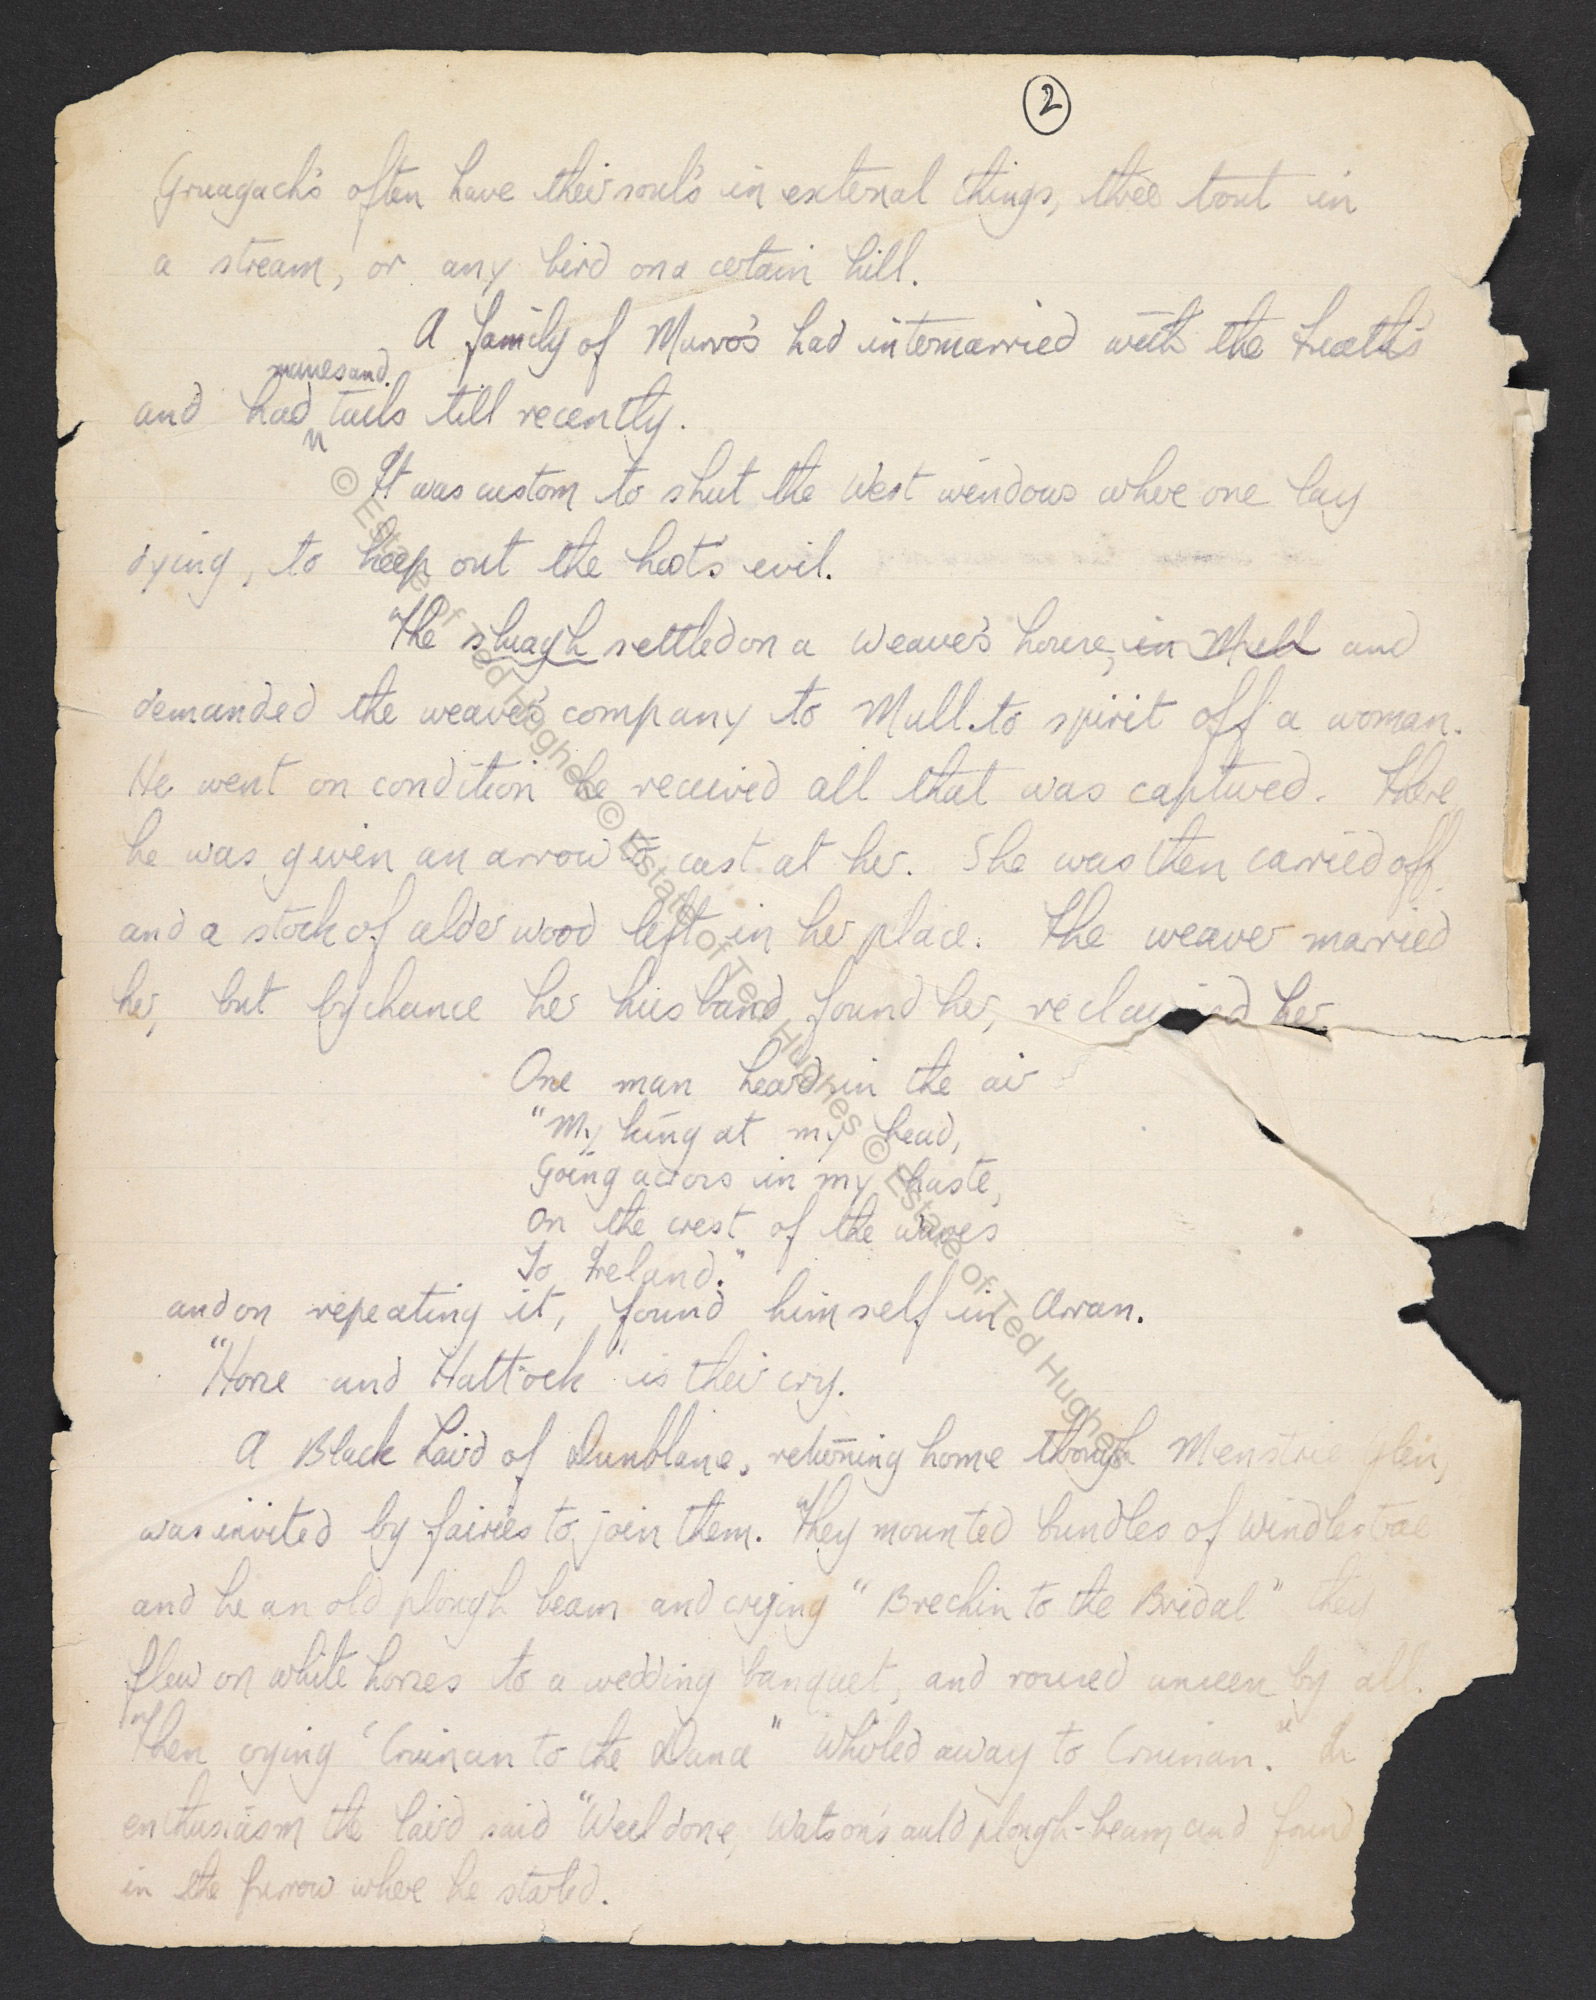 Ted Hughes's early research notes, on topics including folklore